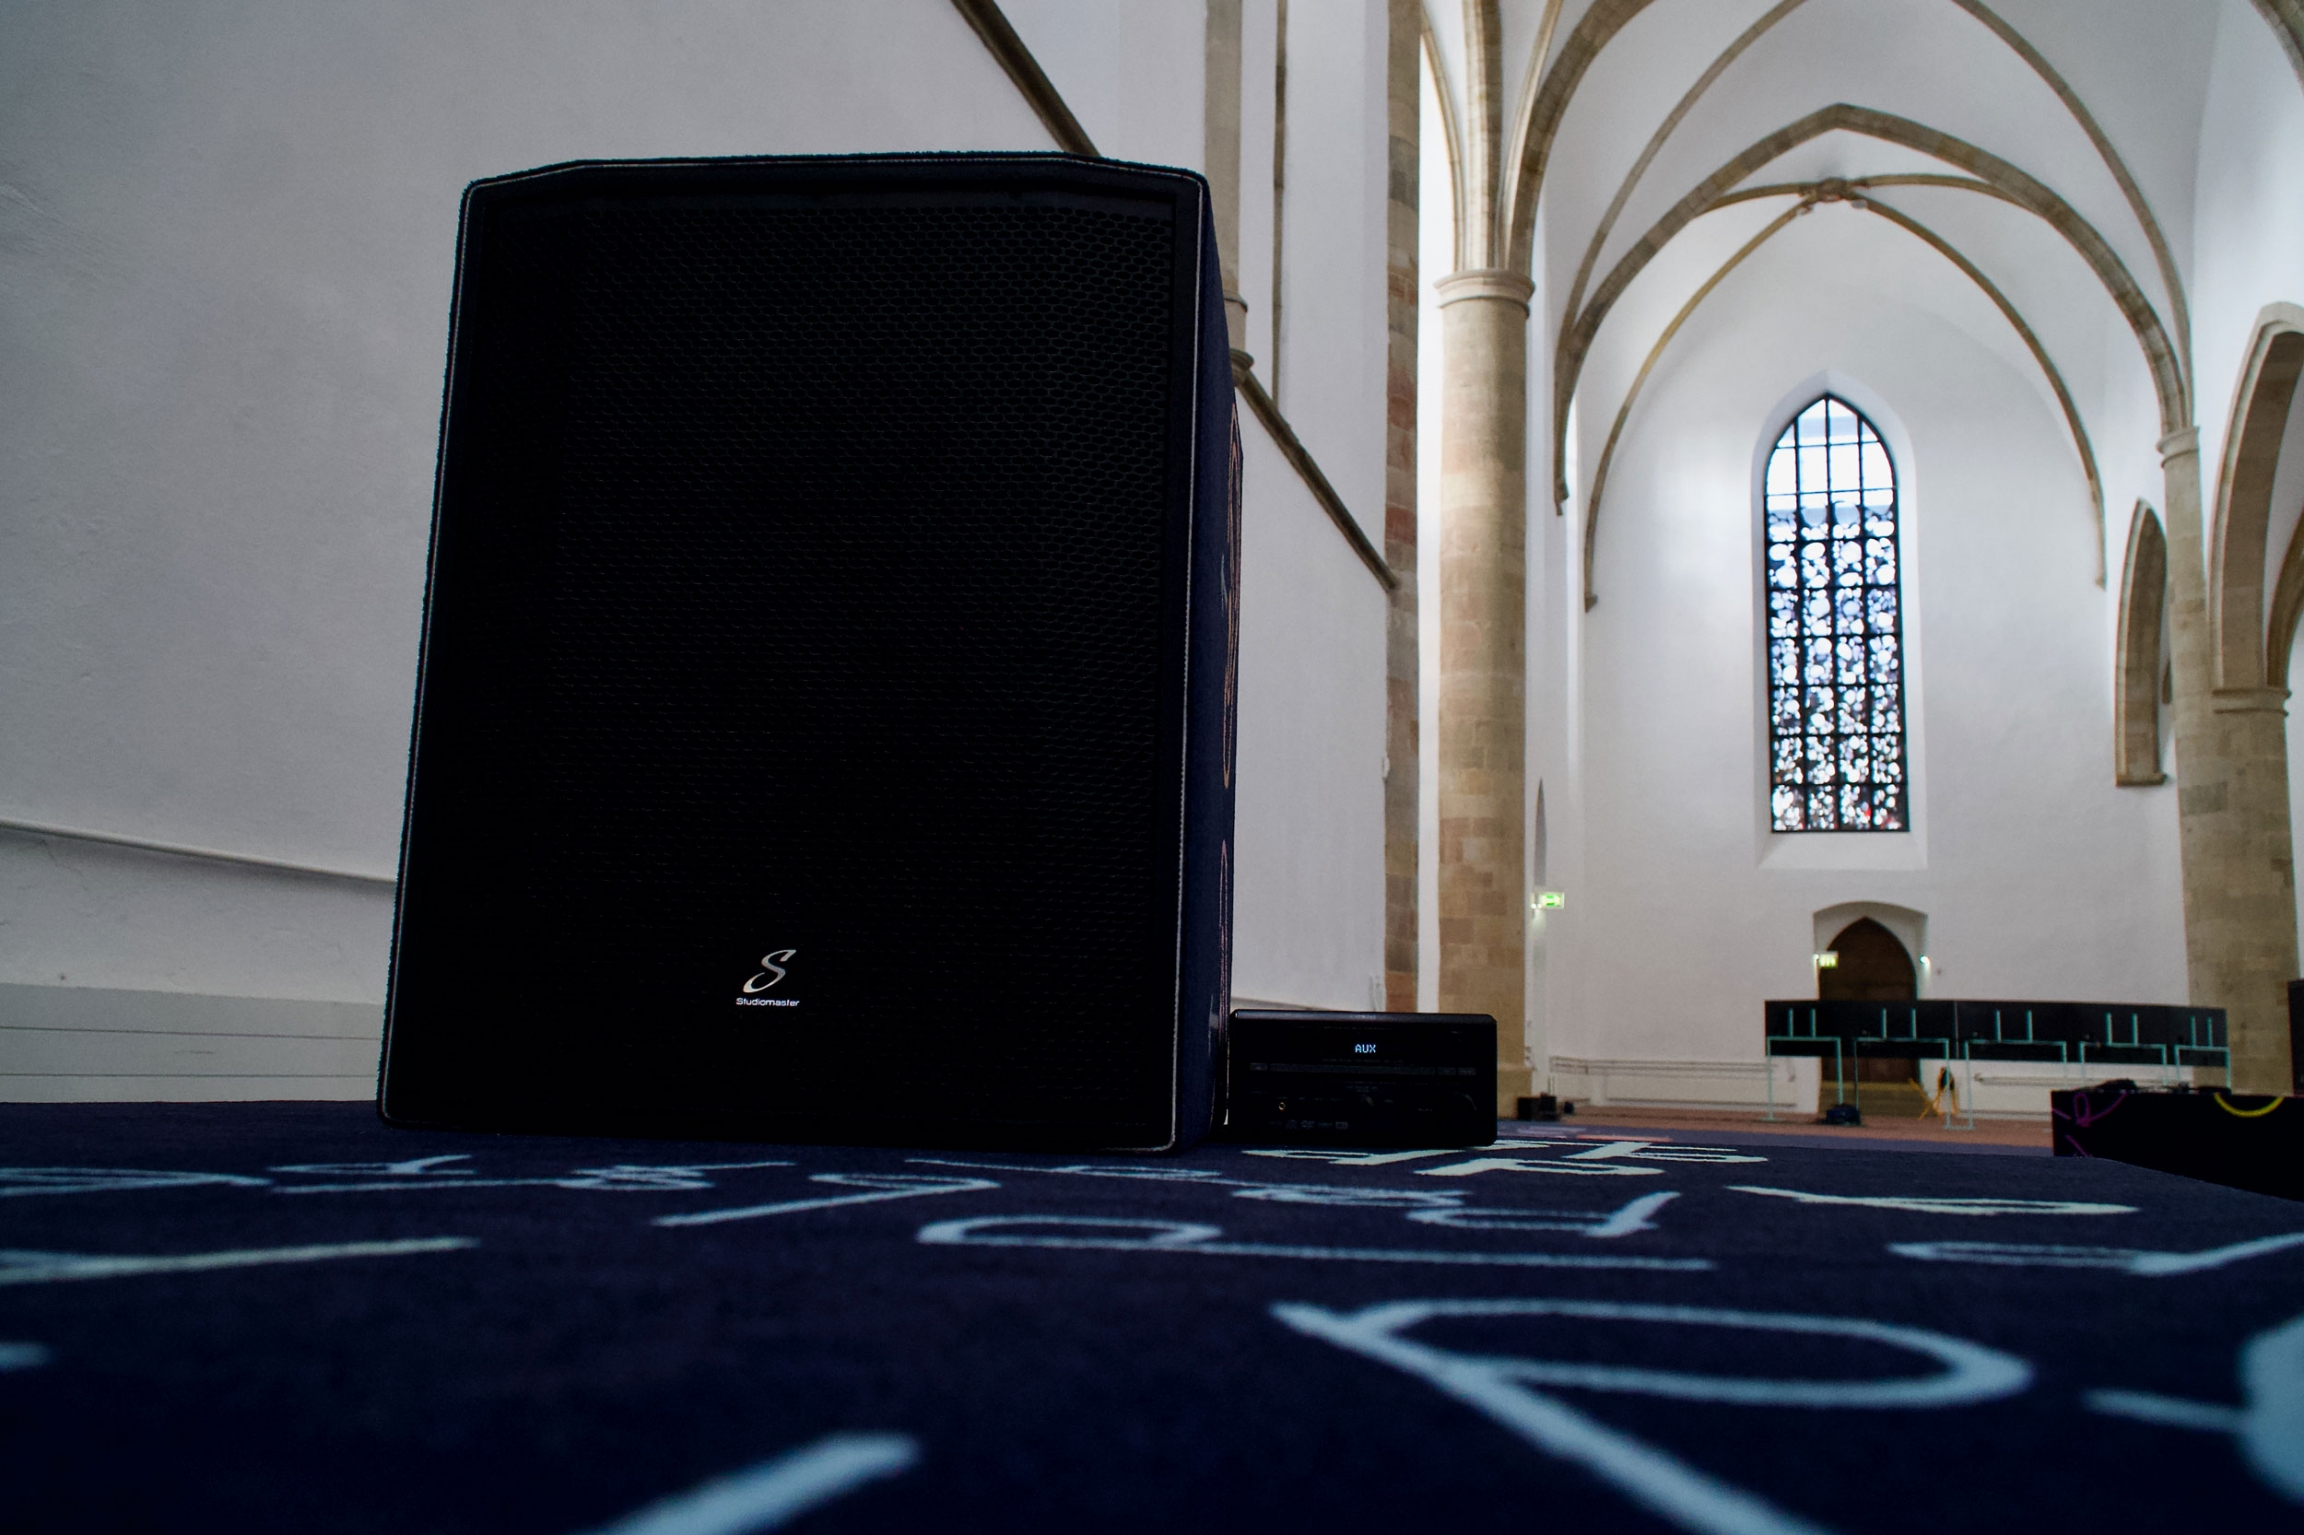 An up-close image of a speaker within a church with high ceilings.